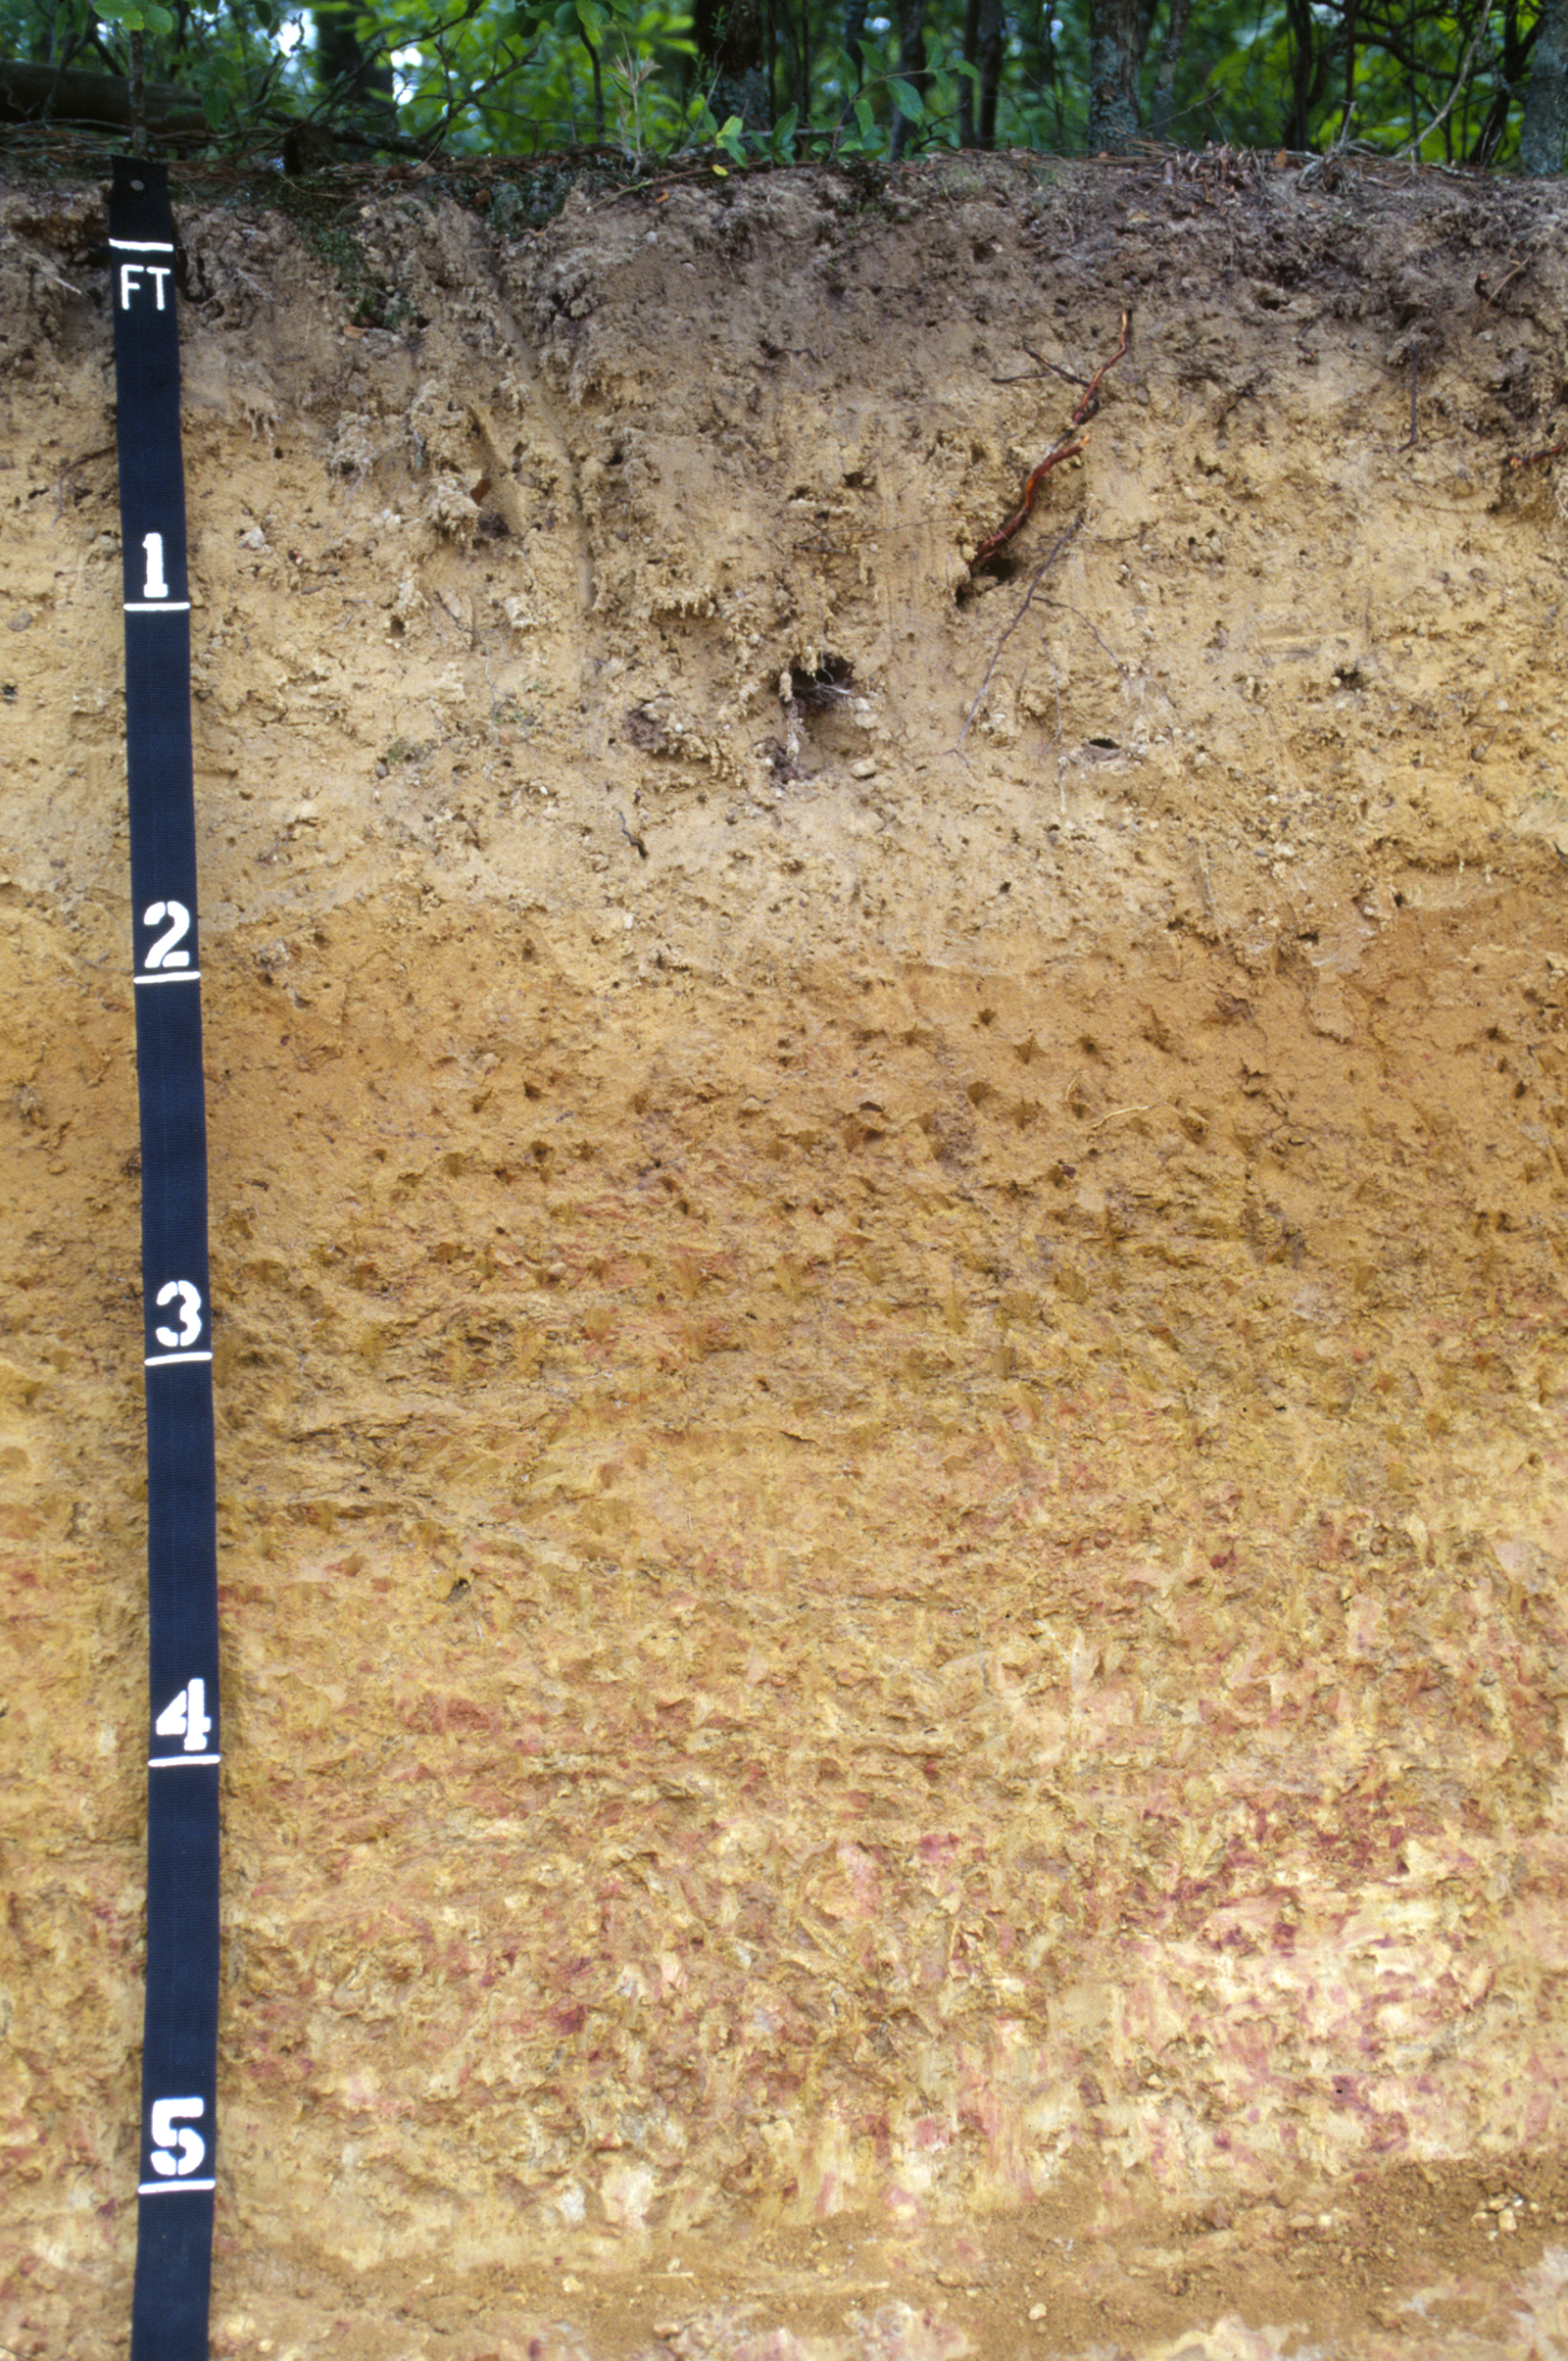 Fuquay soil profile nrcs soils for Soil profile video